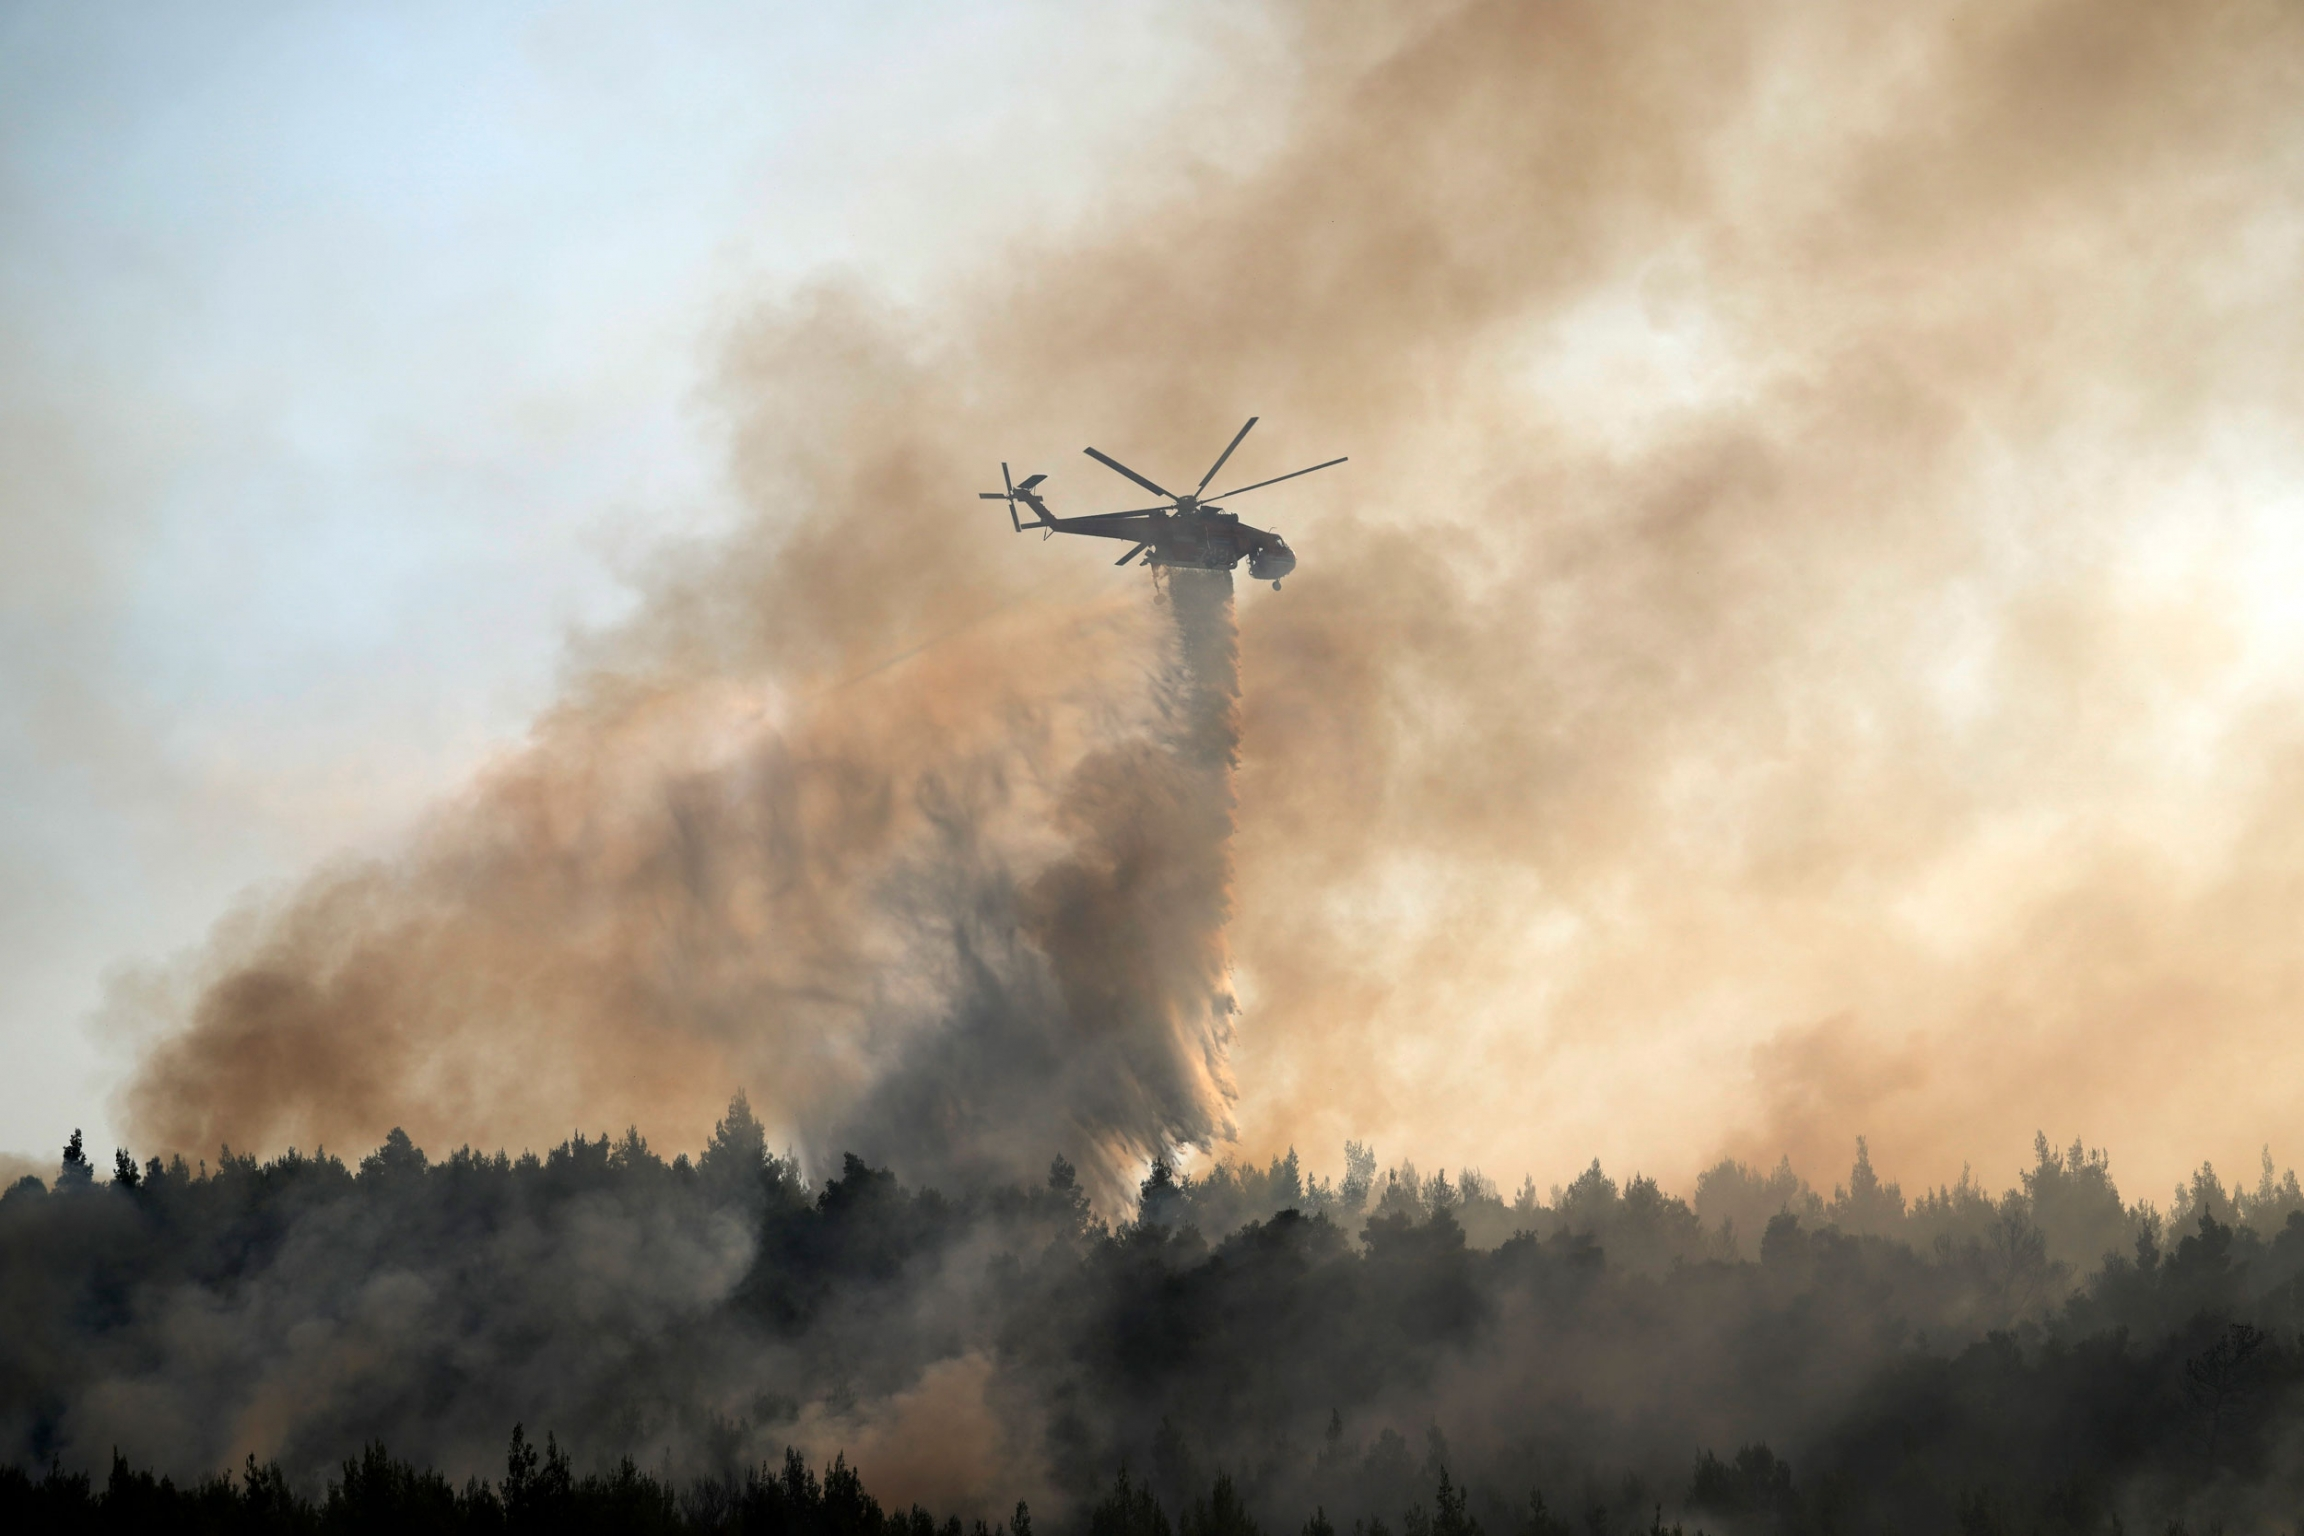 A helicopter is shown in the distance amid smoke rising up from the forest below.